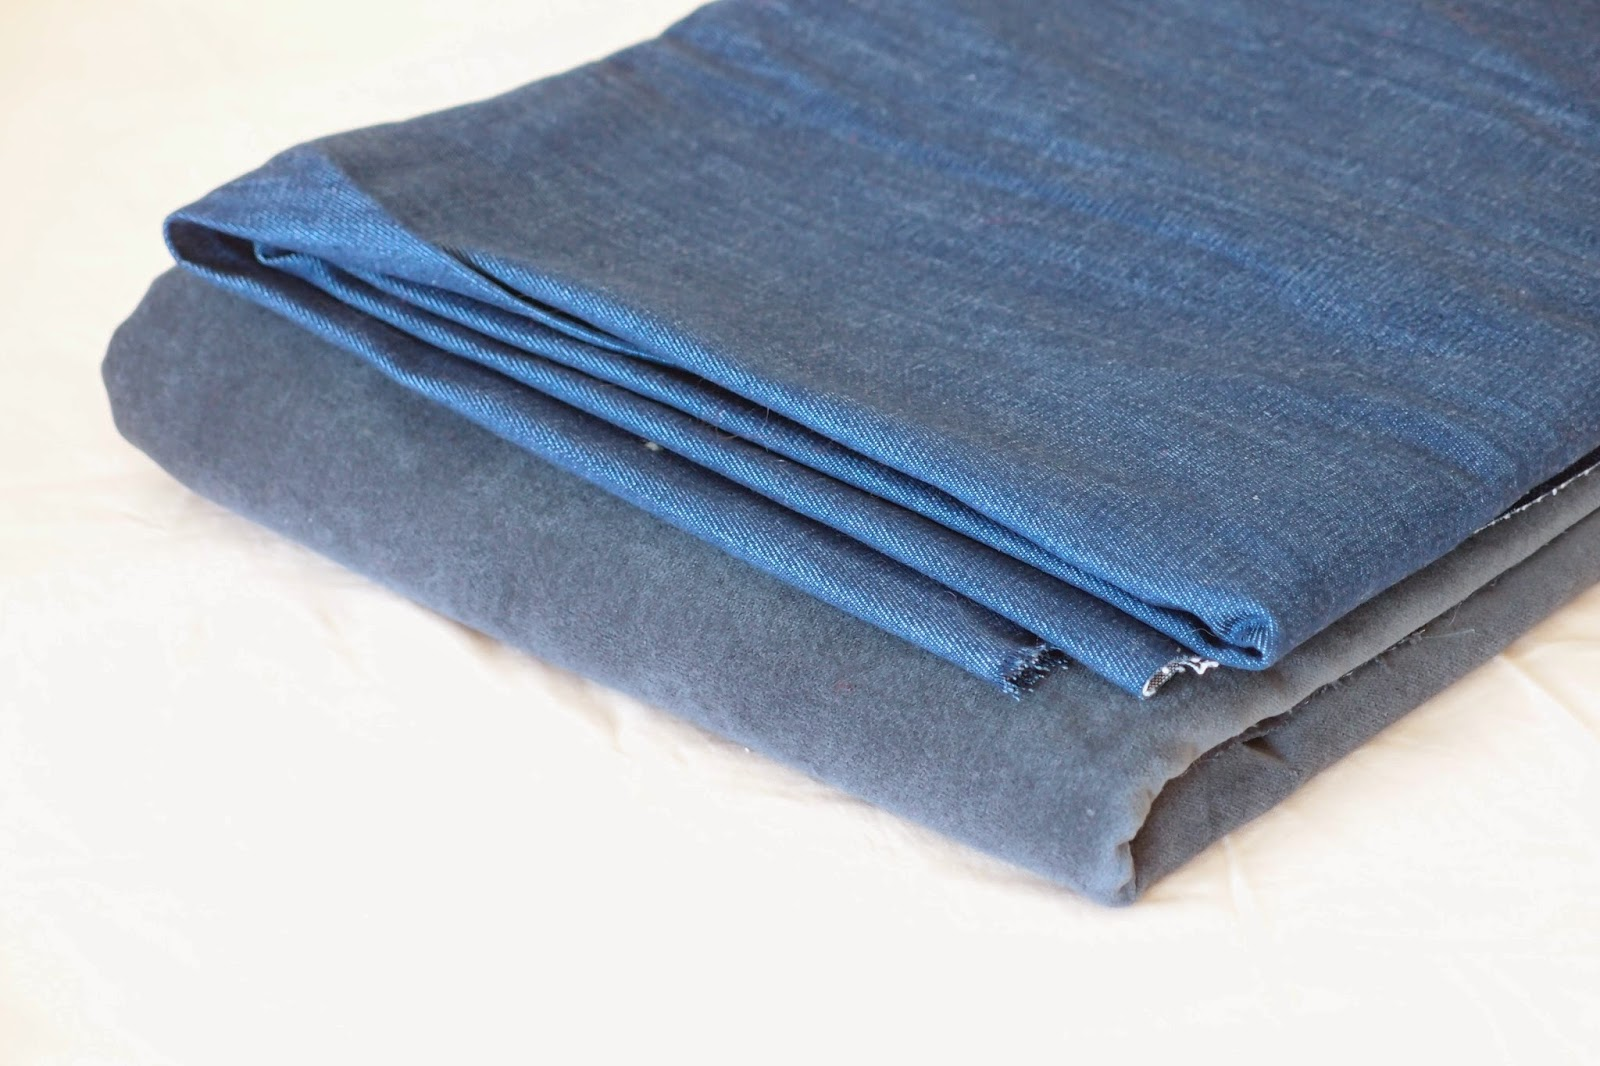 new denim /and alikes - velvet/ additon to my stash